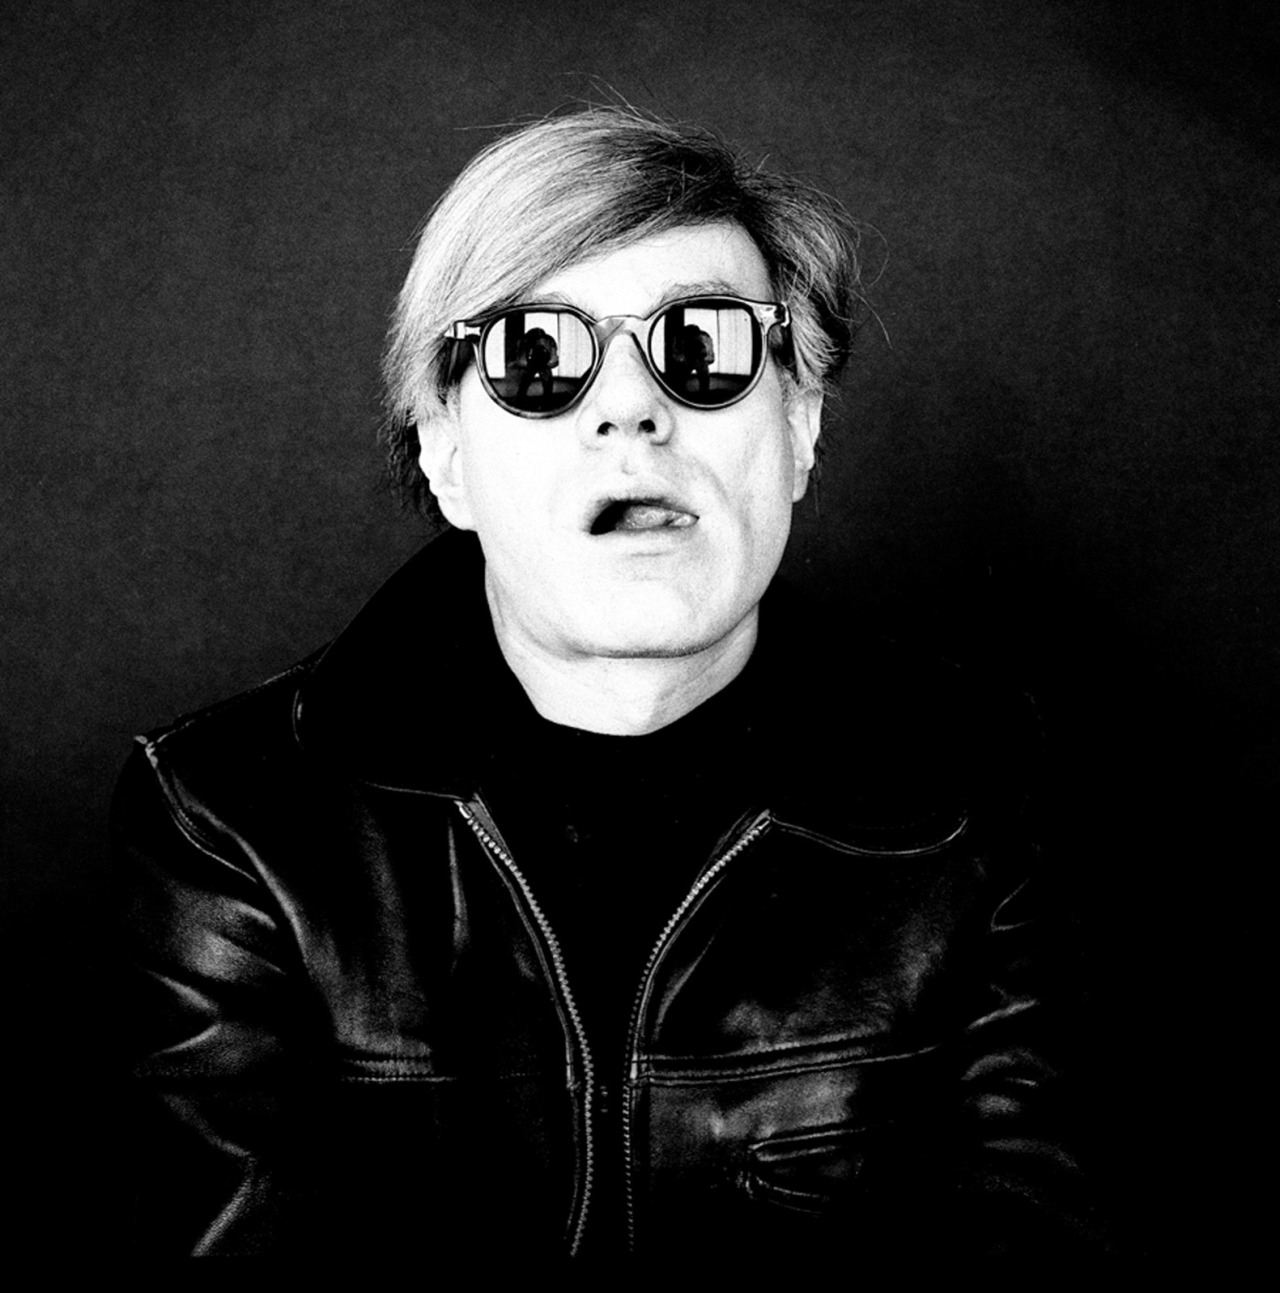 Andy Warhol. Photo Jerry Schatz - pjsmith | ello